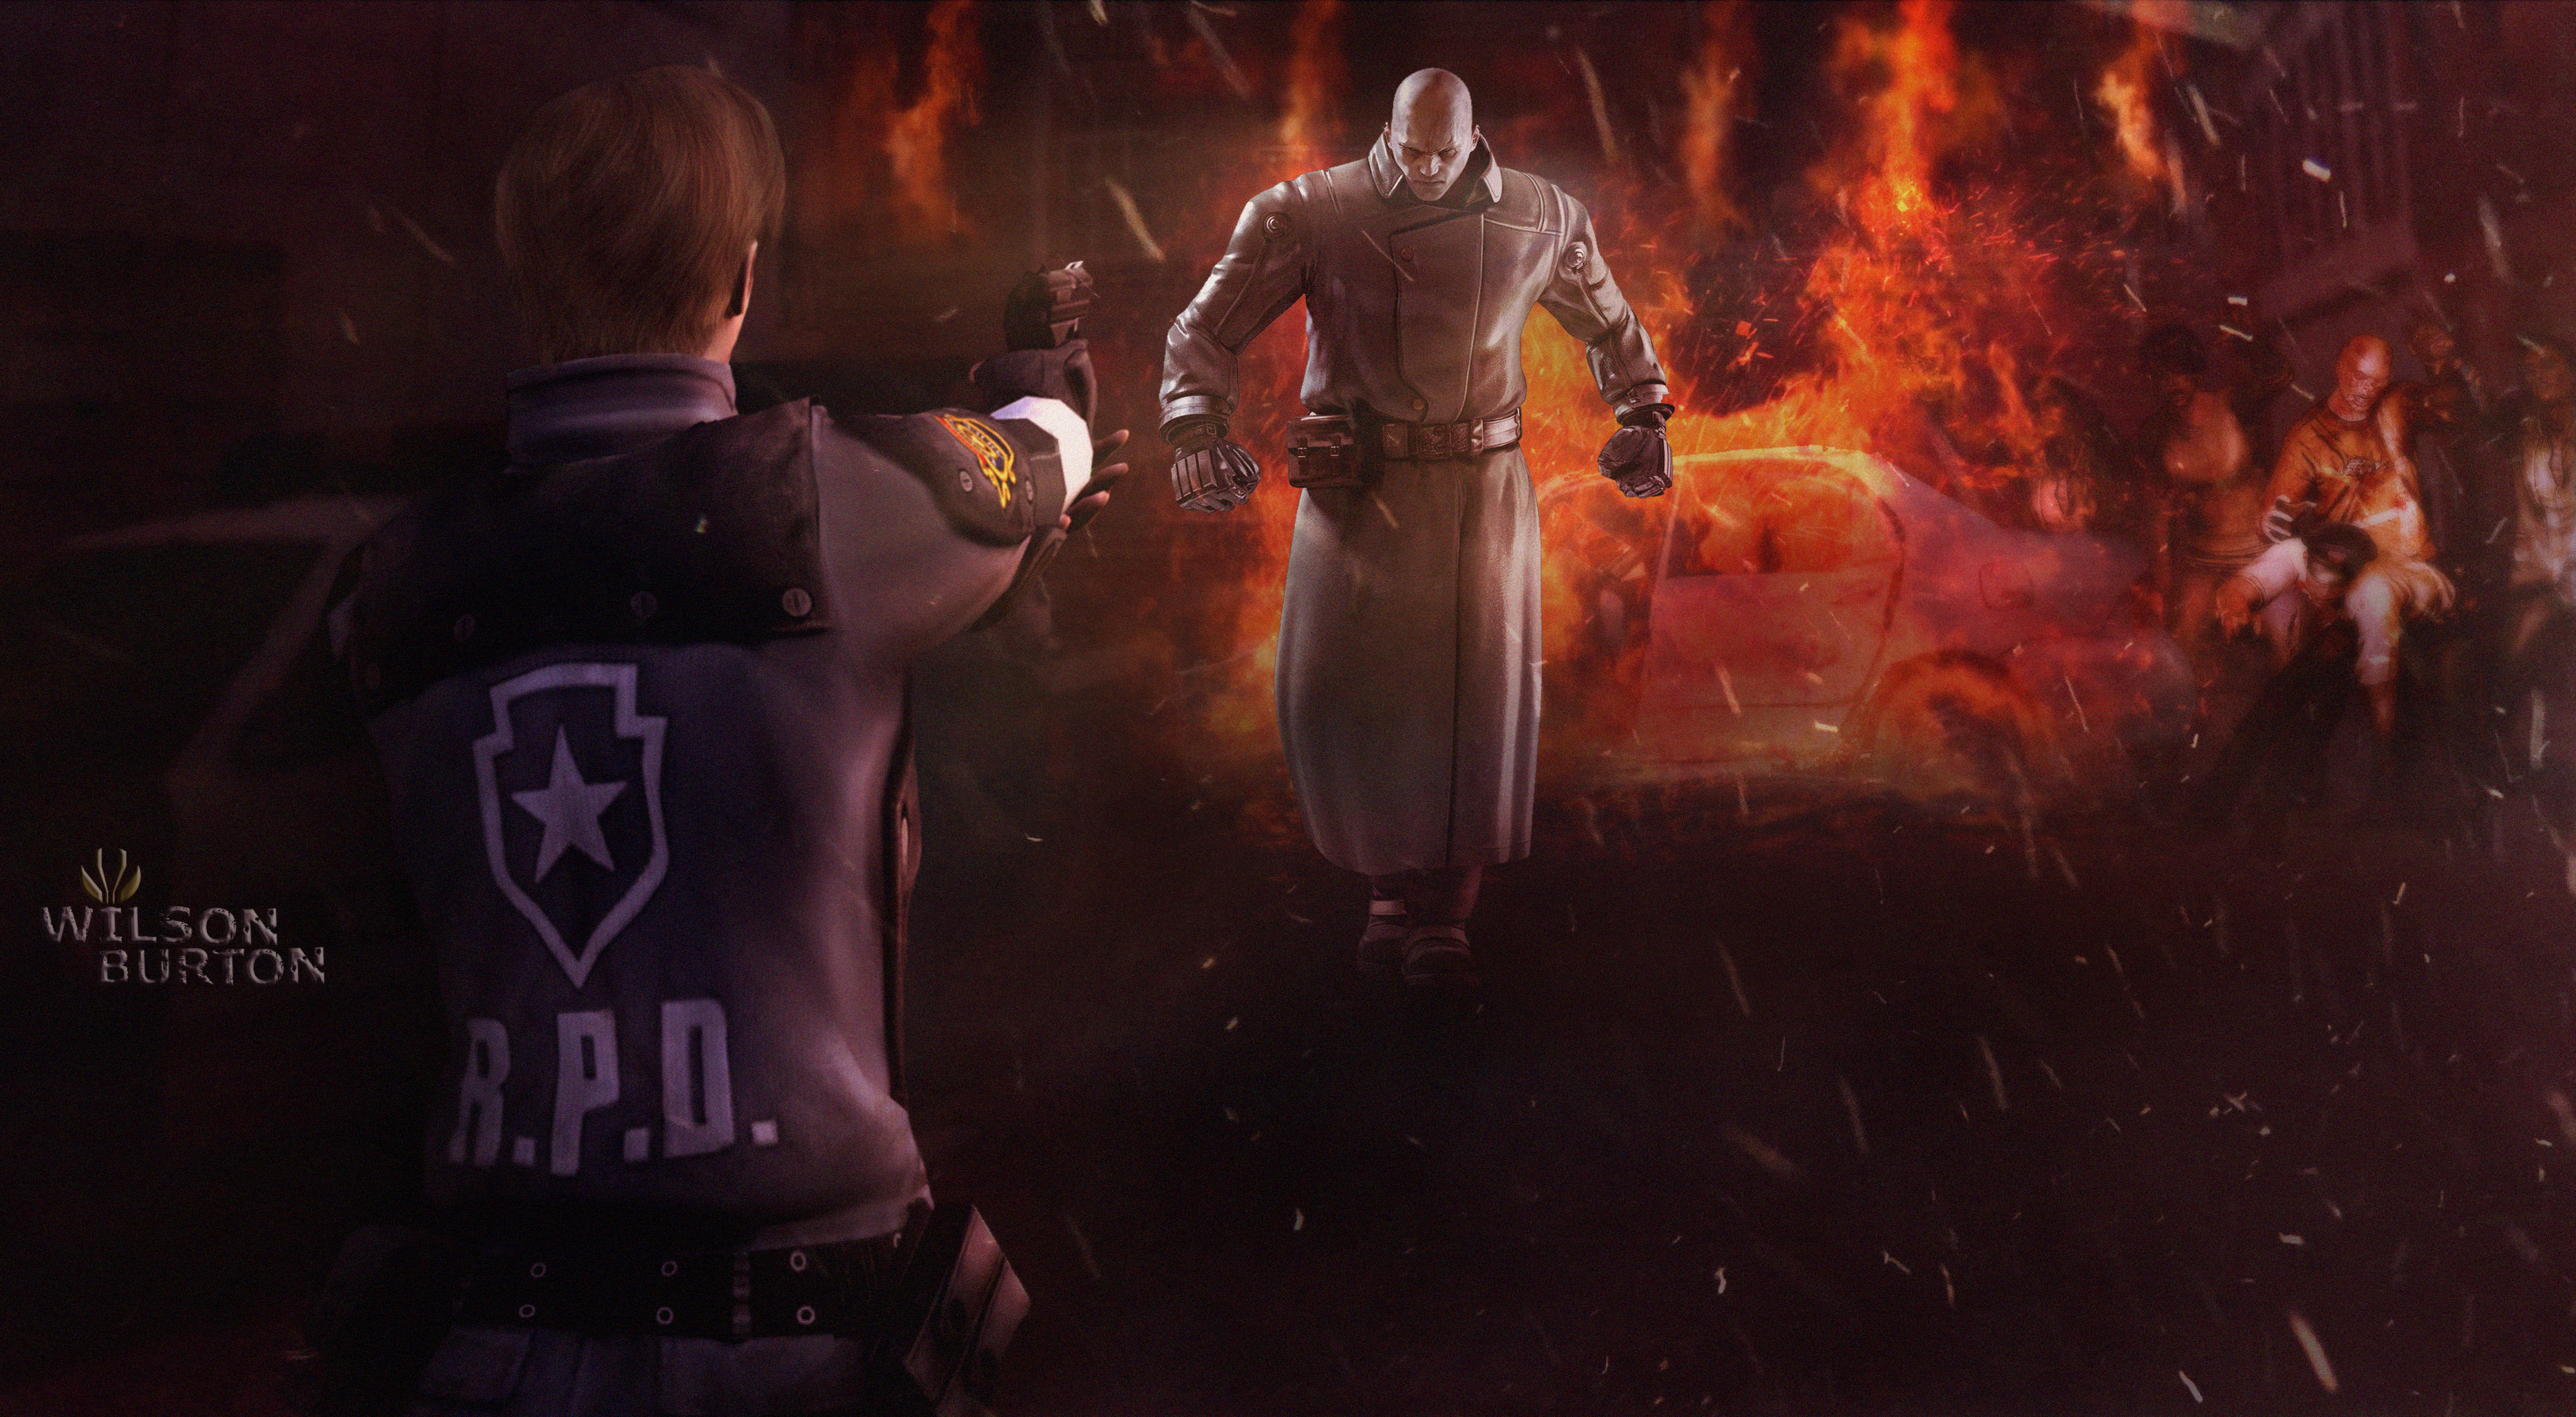 Resident evil 2 remake art by wilson burton by wilsonburton20 on